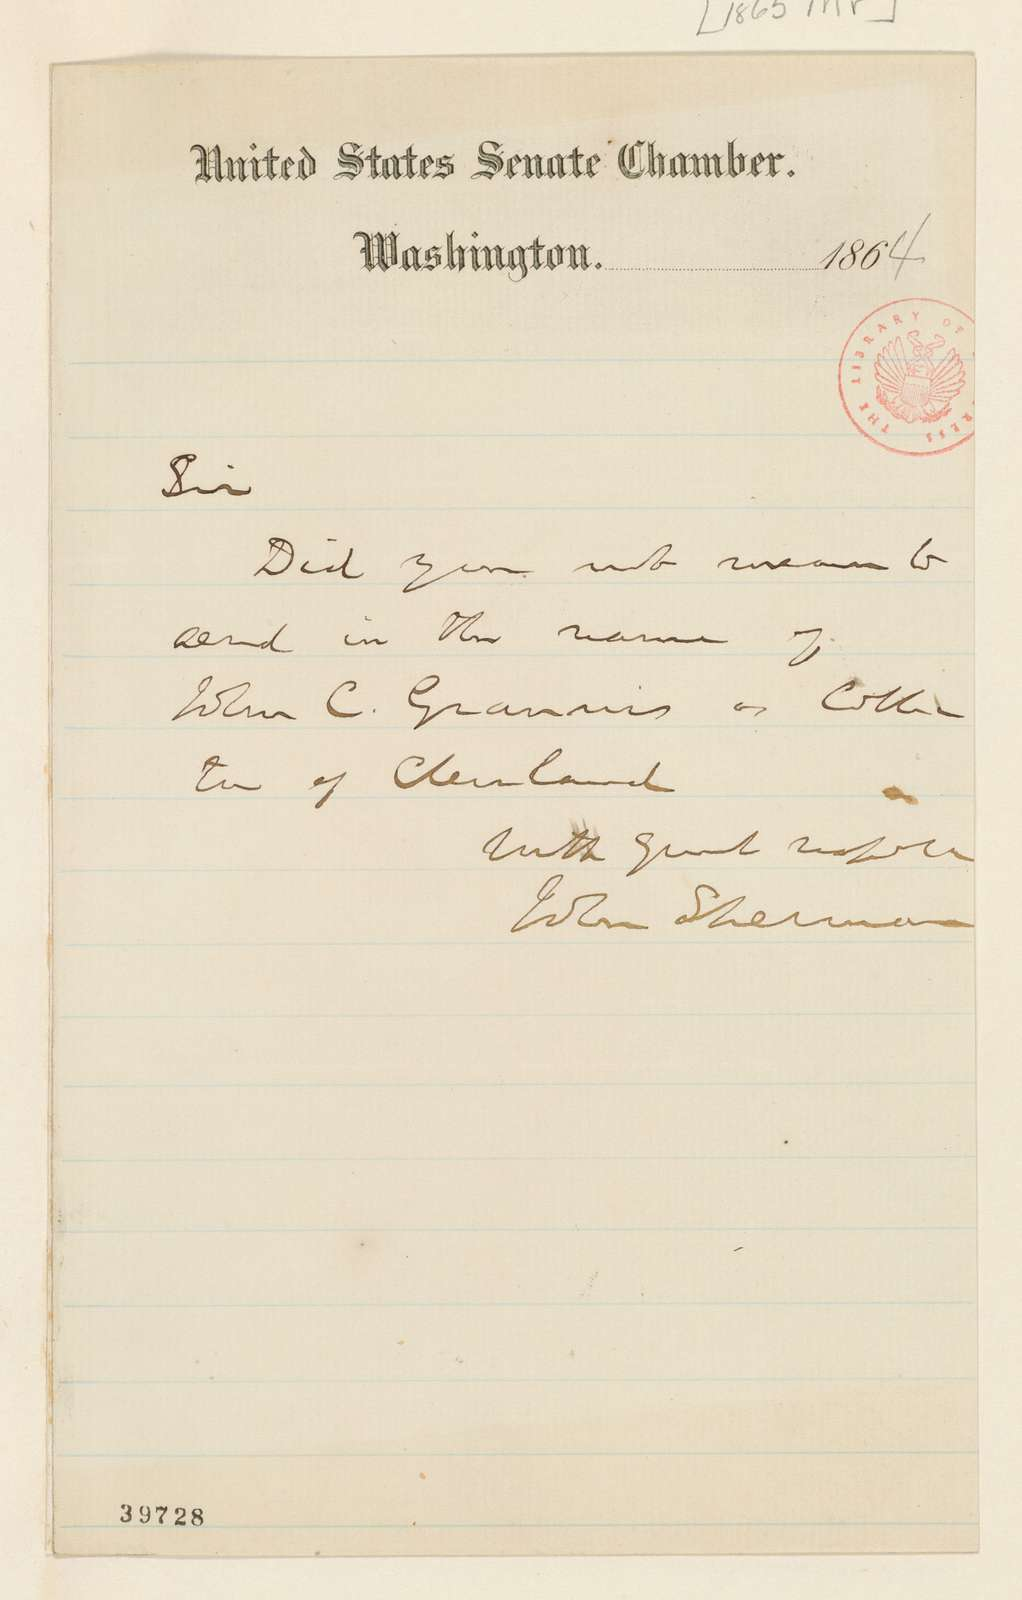 Abraham Lincoln papers: Series 1. General Correspondence. 1833-1916: John Sherman to Abraham Lincoln, March 1865 (Appointment of collector at Cleveland)